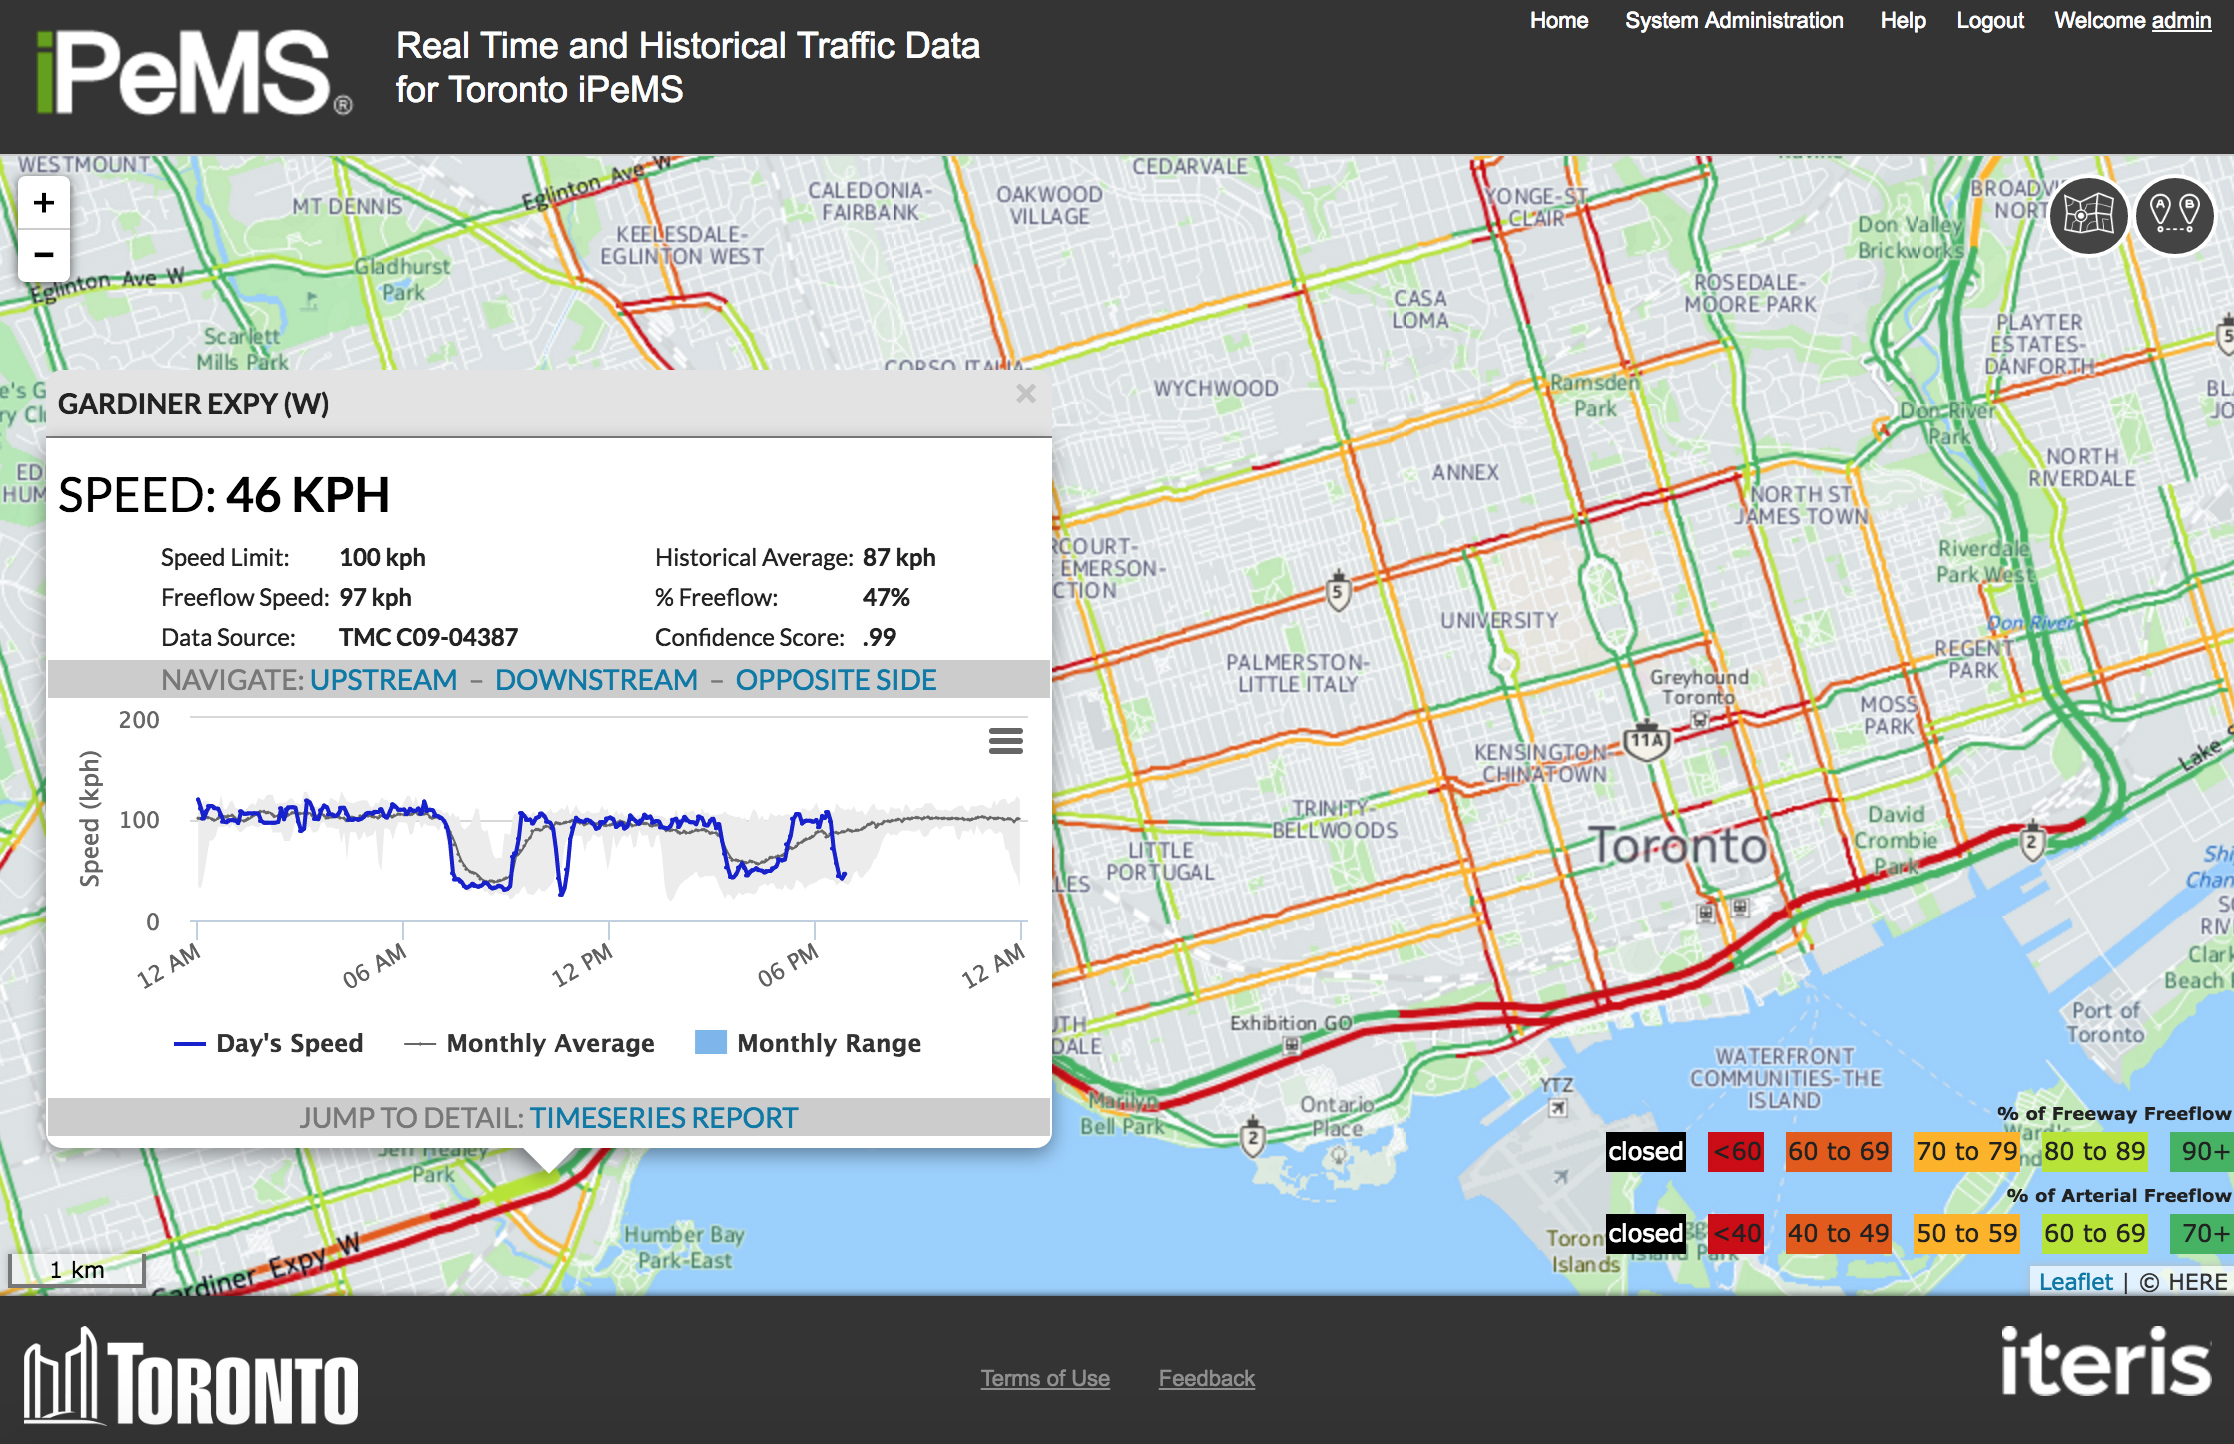 Real-time and historical Toronto traffic data visualization via Iteris iPeMS 9 May, 2017 (Source: Iteris).